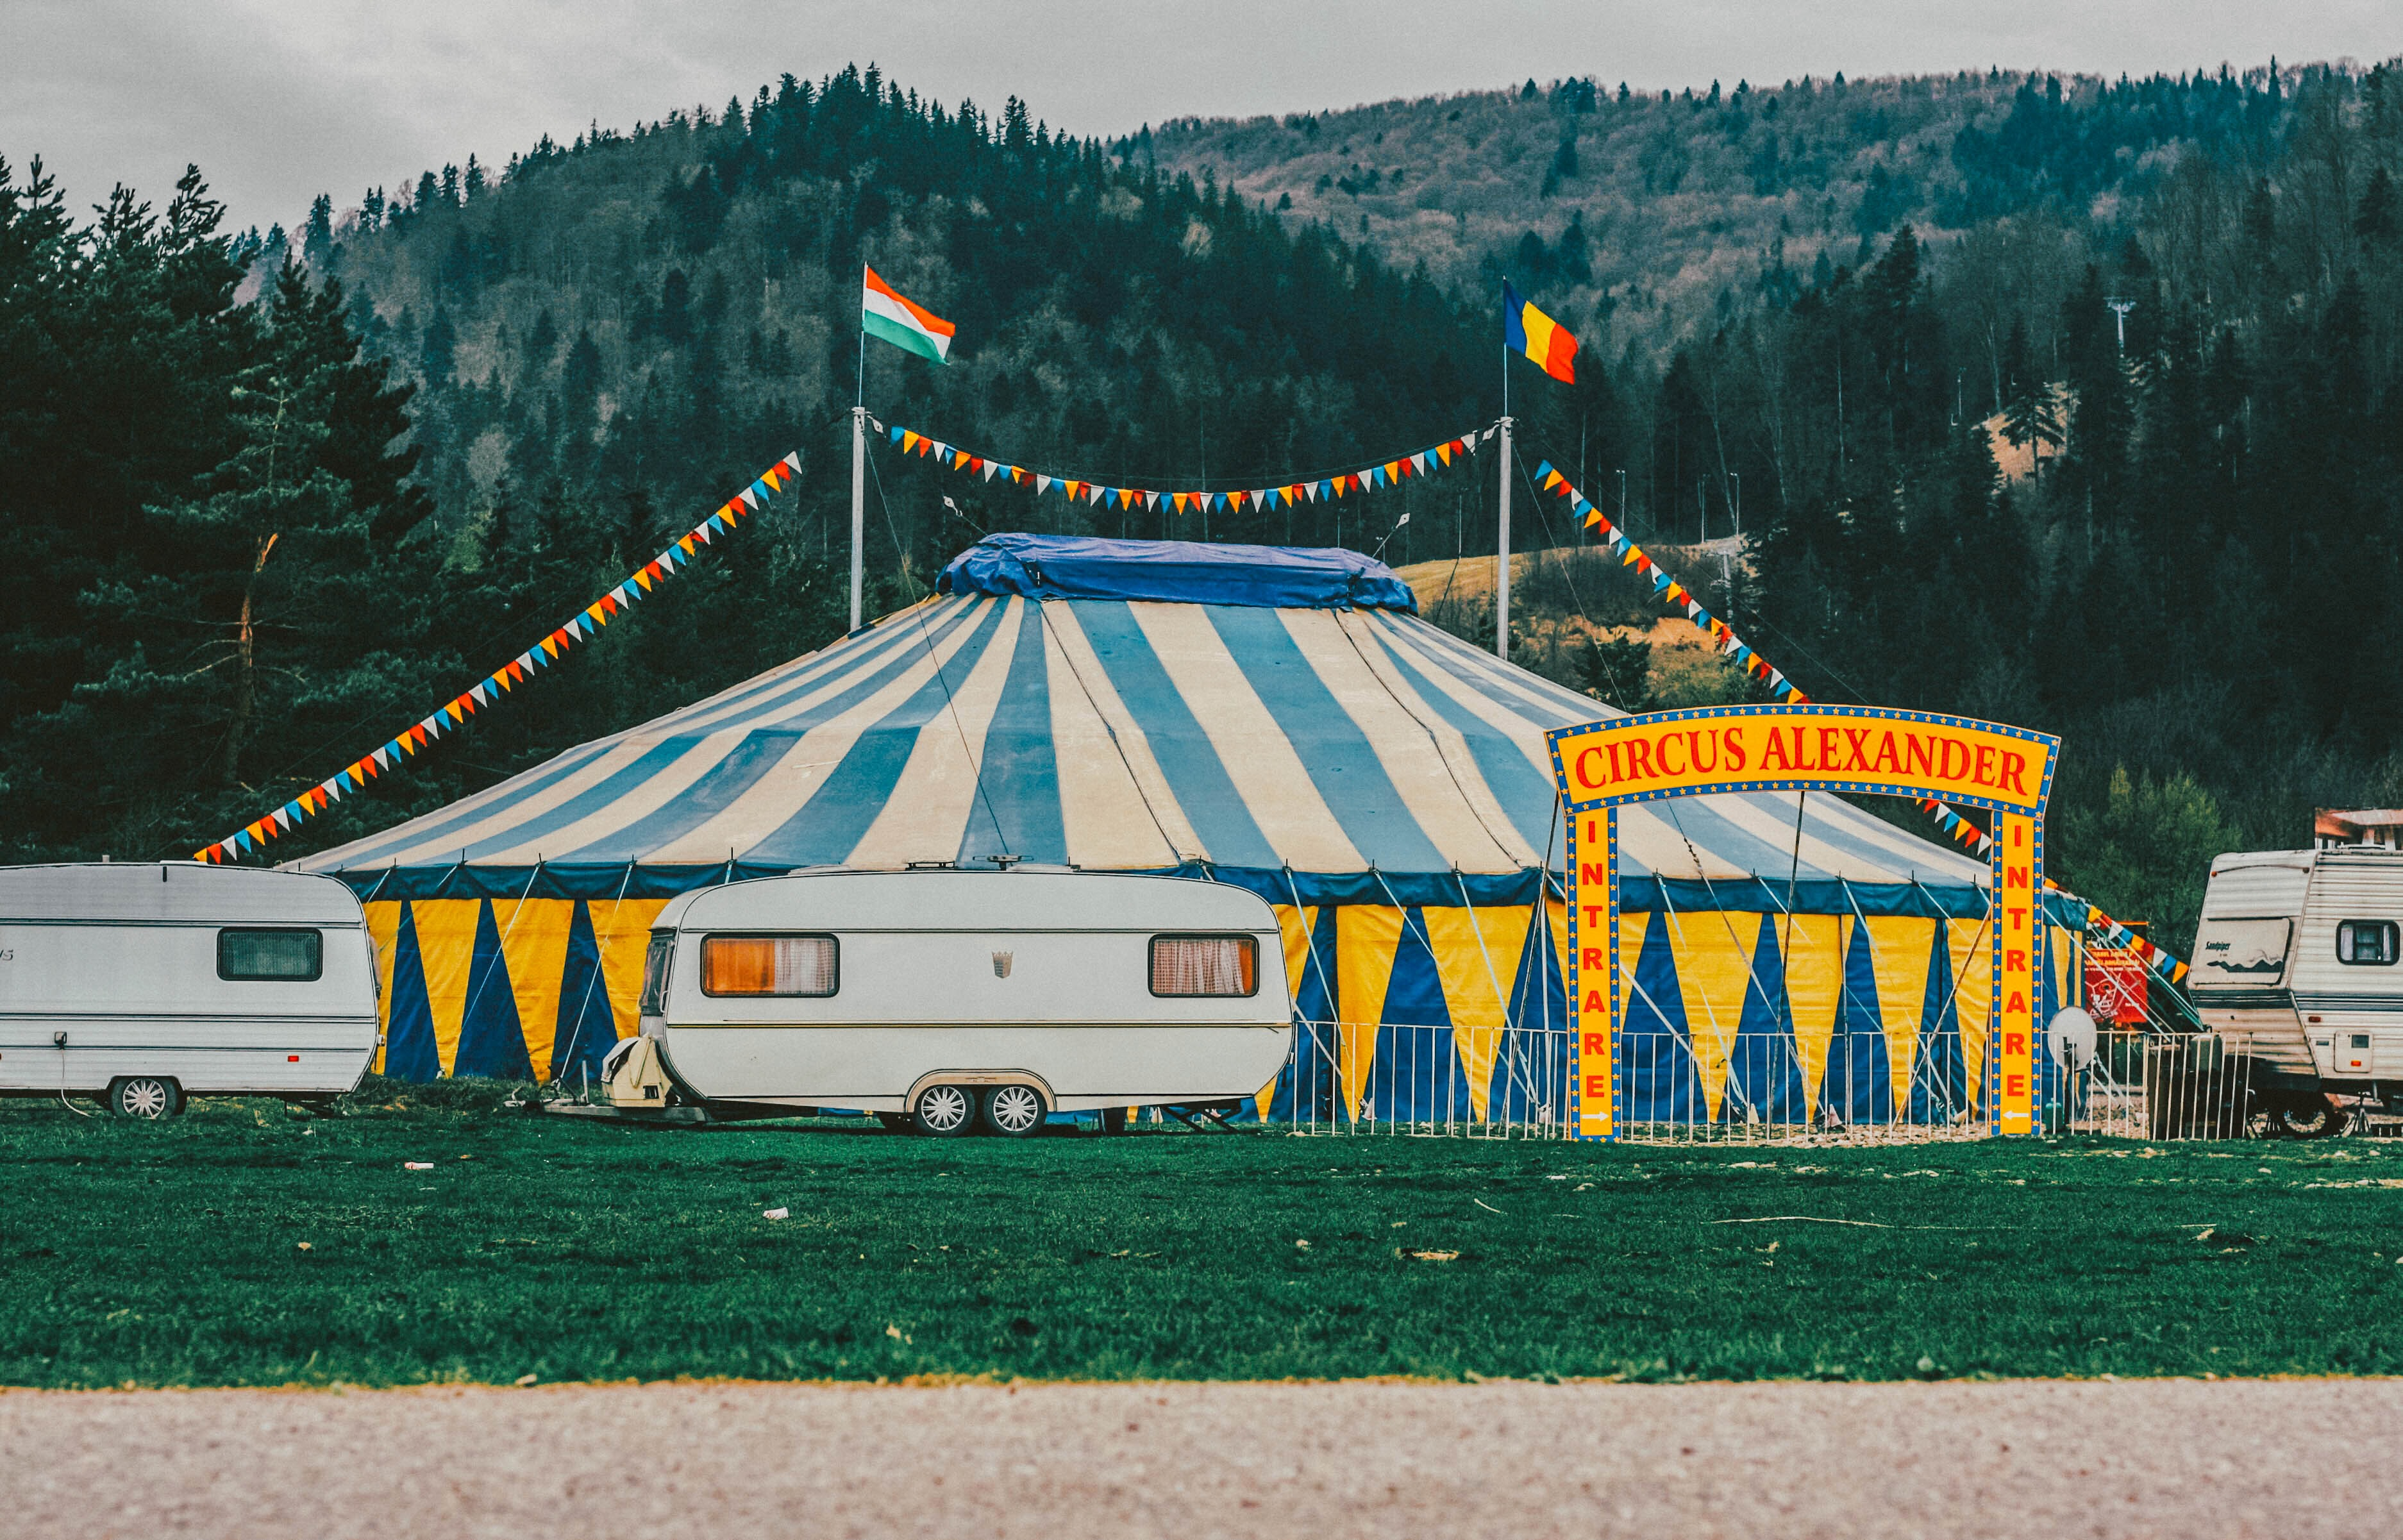 Caravans around a circus tent in the mountains